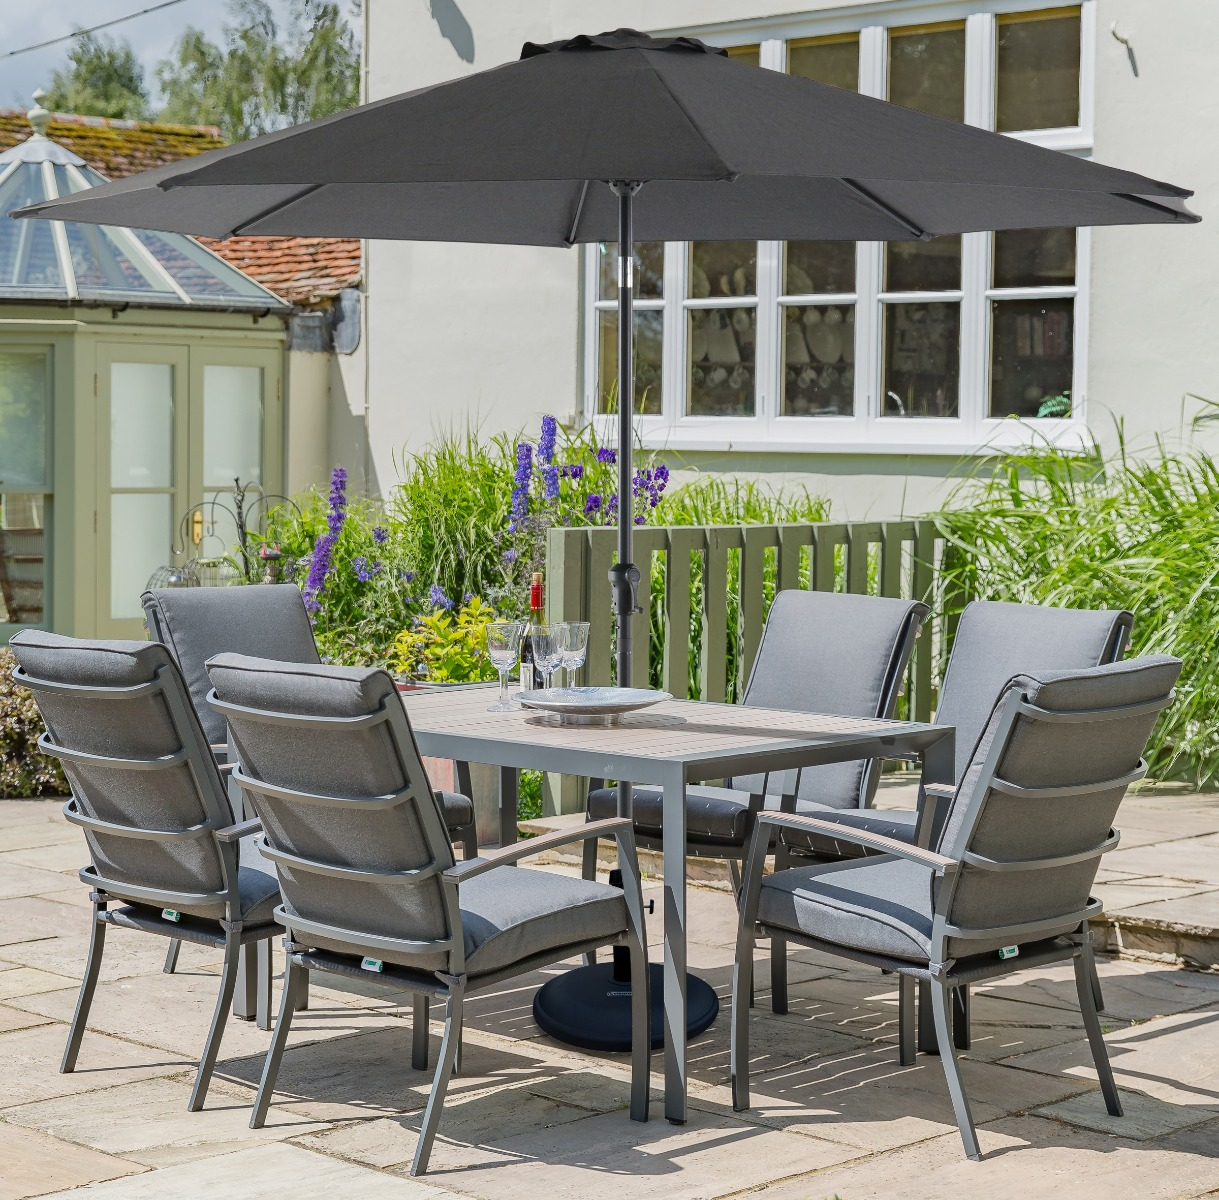 Leisuregrow Milano Grey Aluminium 6 Seater Dining Set with Highback Armchairs and  300cm Parasol and Base